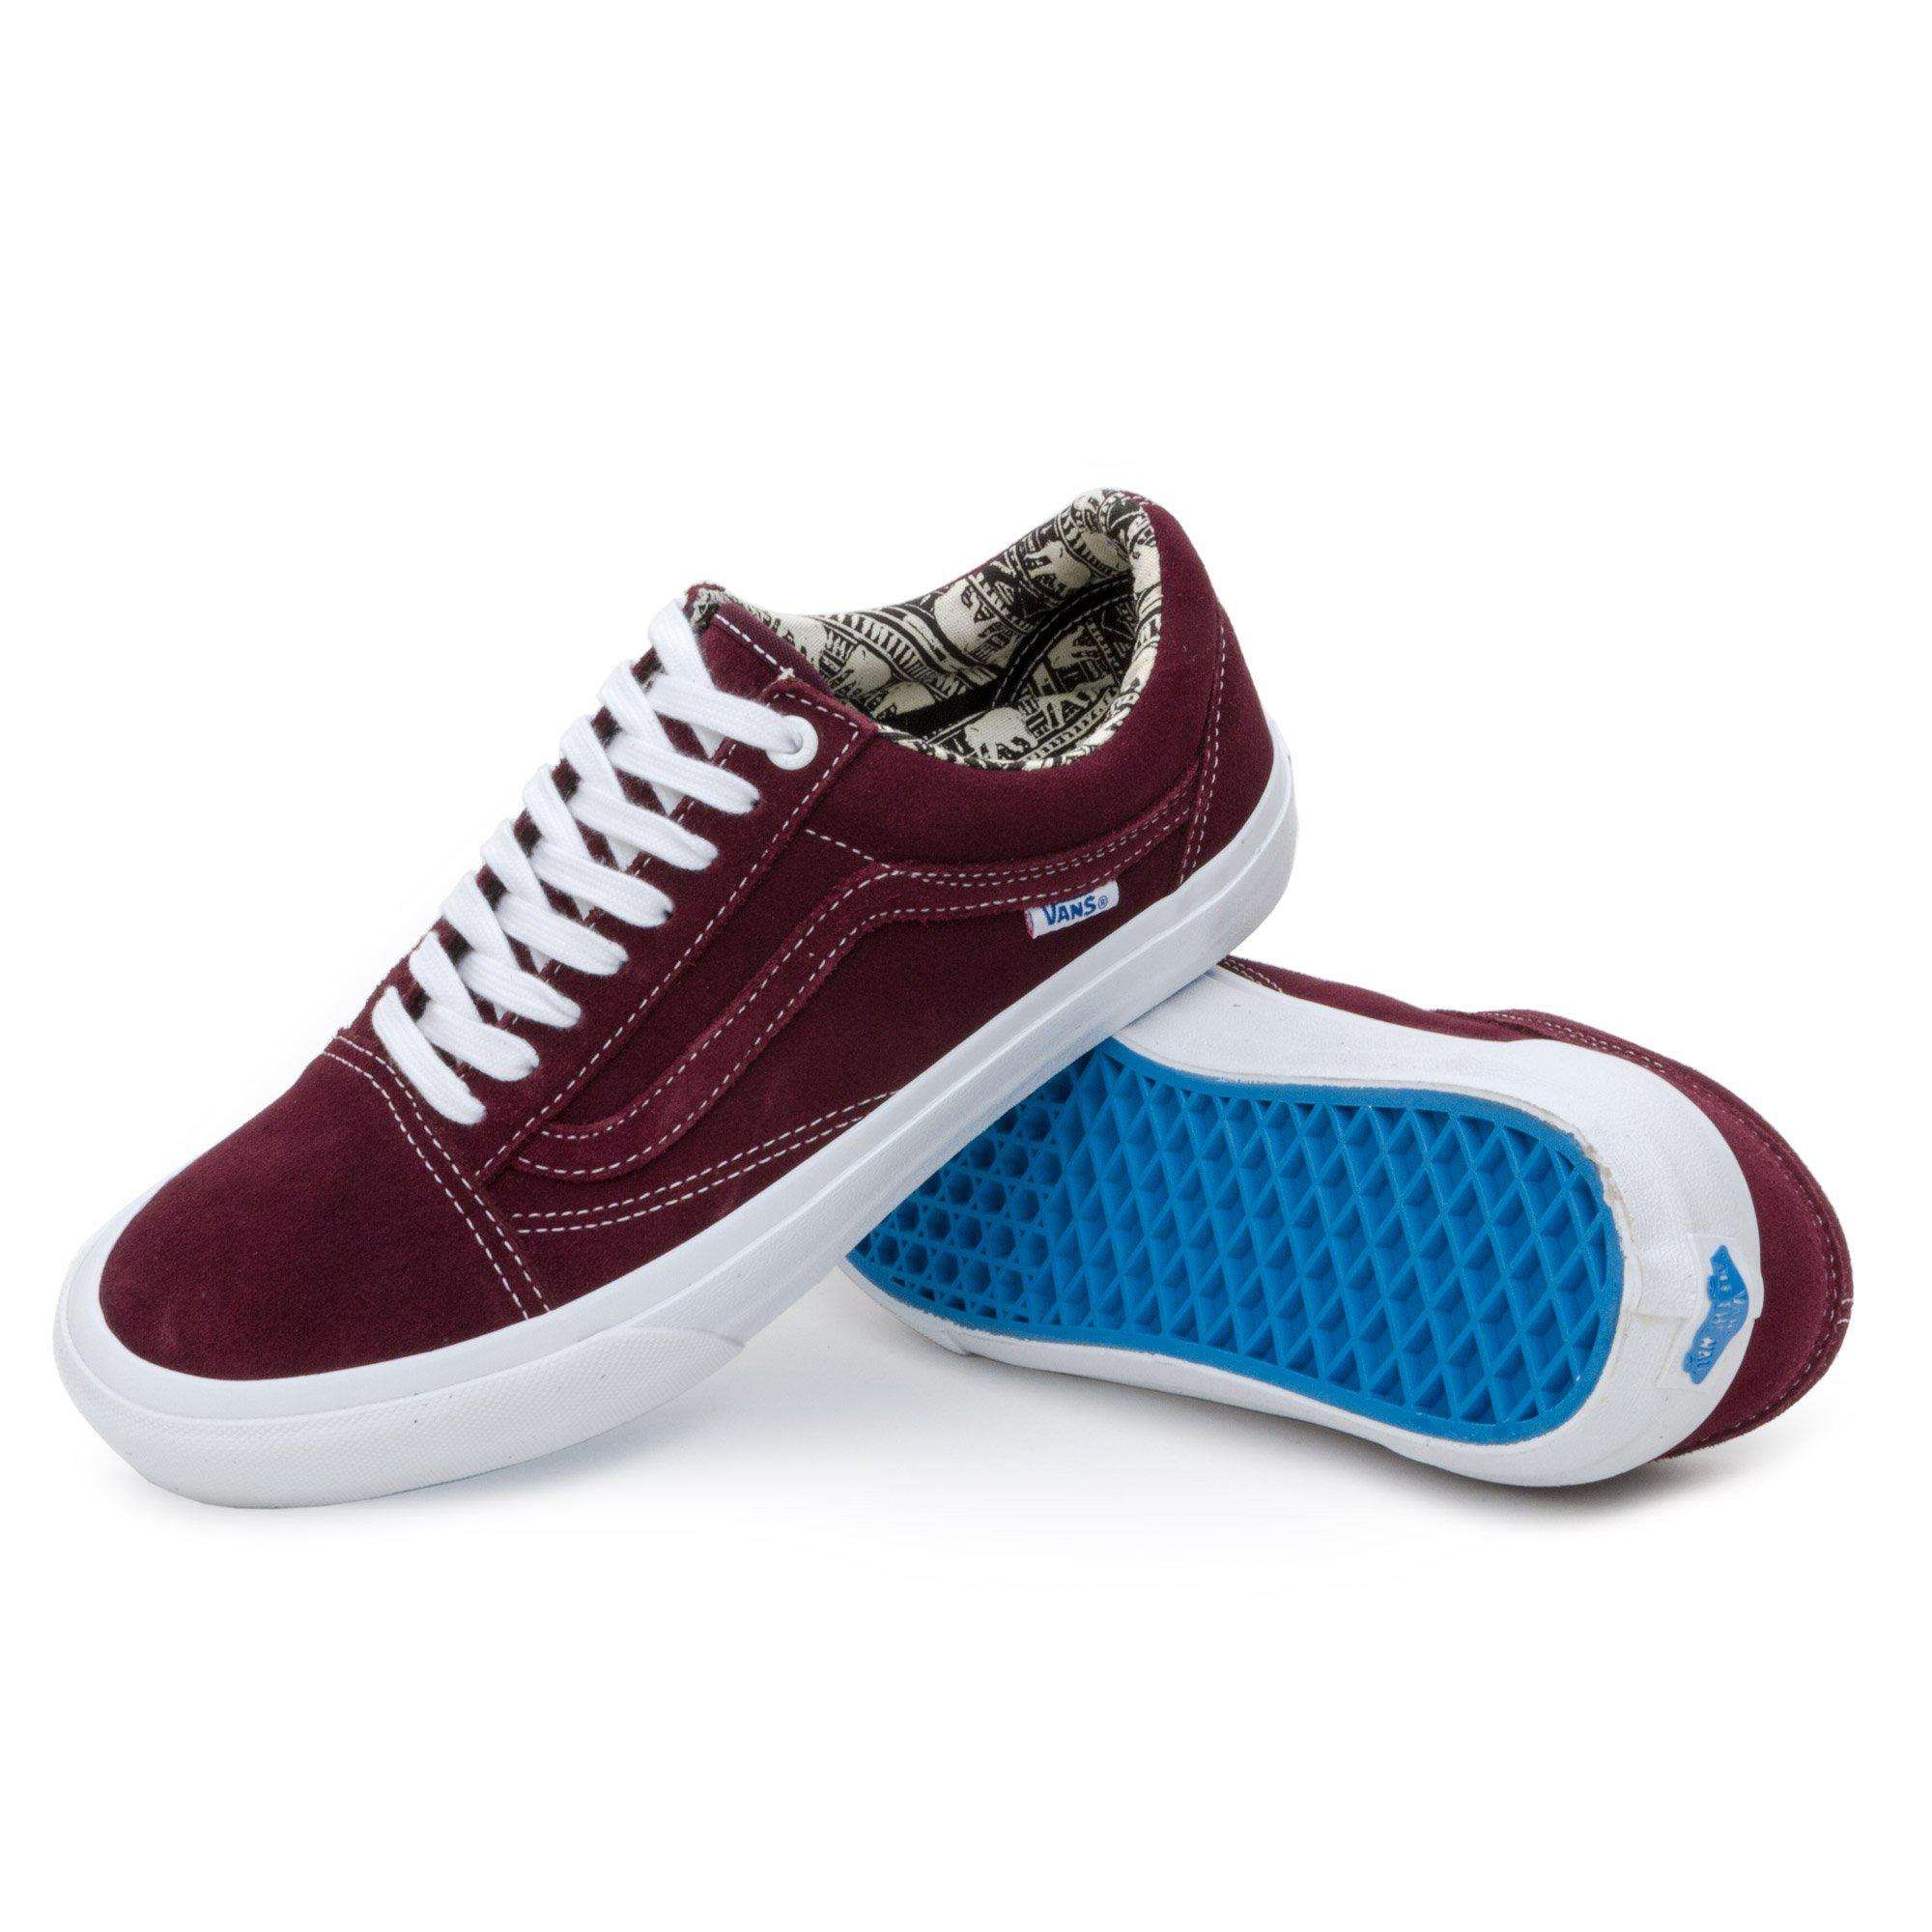 Pro Ray Old Skool Shoes Men's Barbee rQdChxts